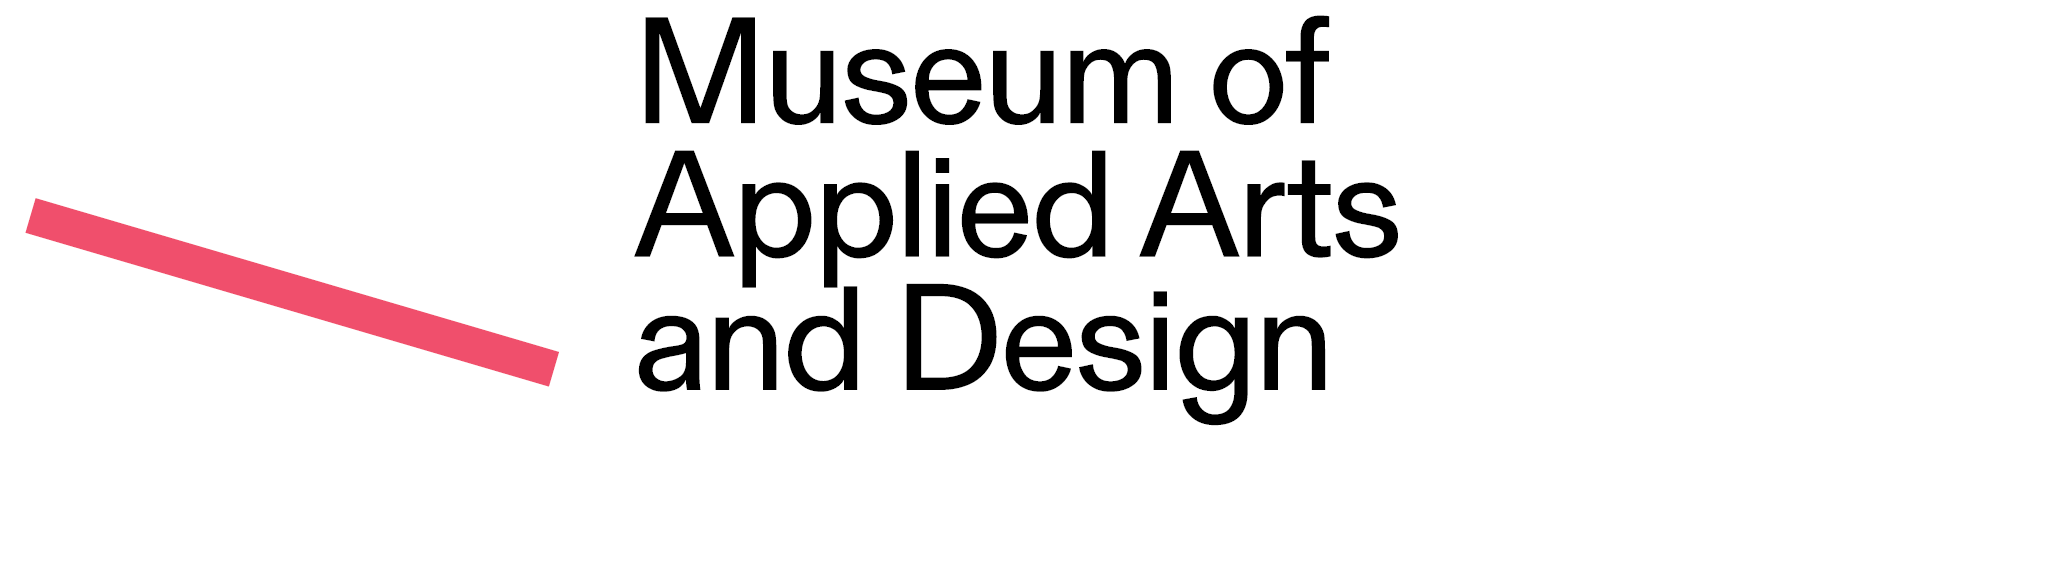 Museum of Applied Arts and Design